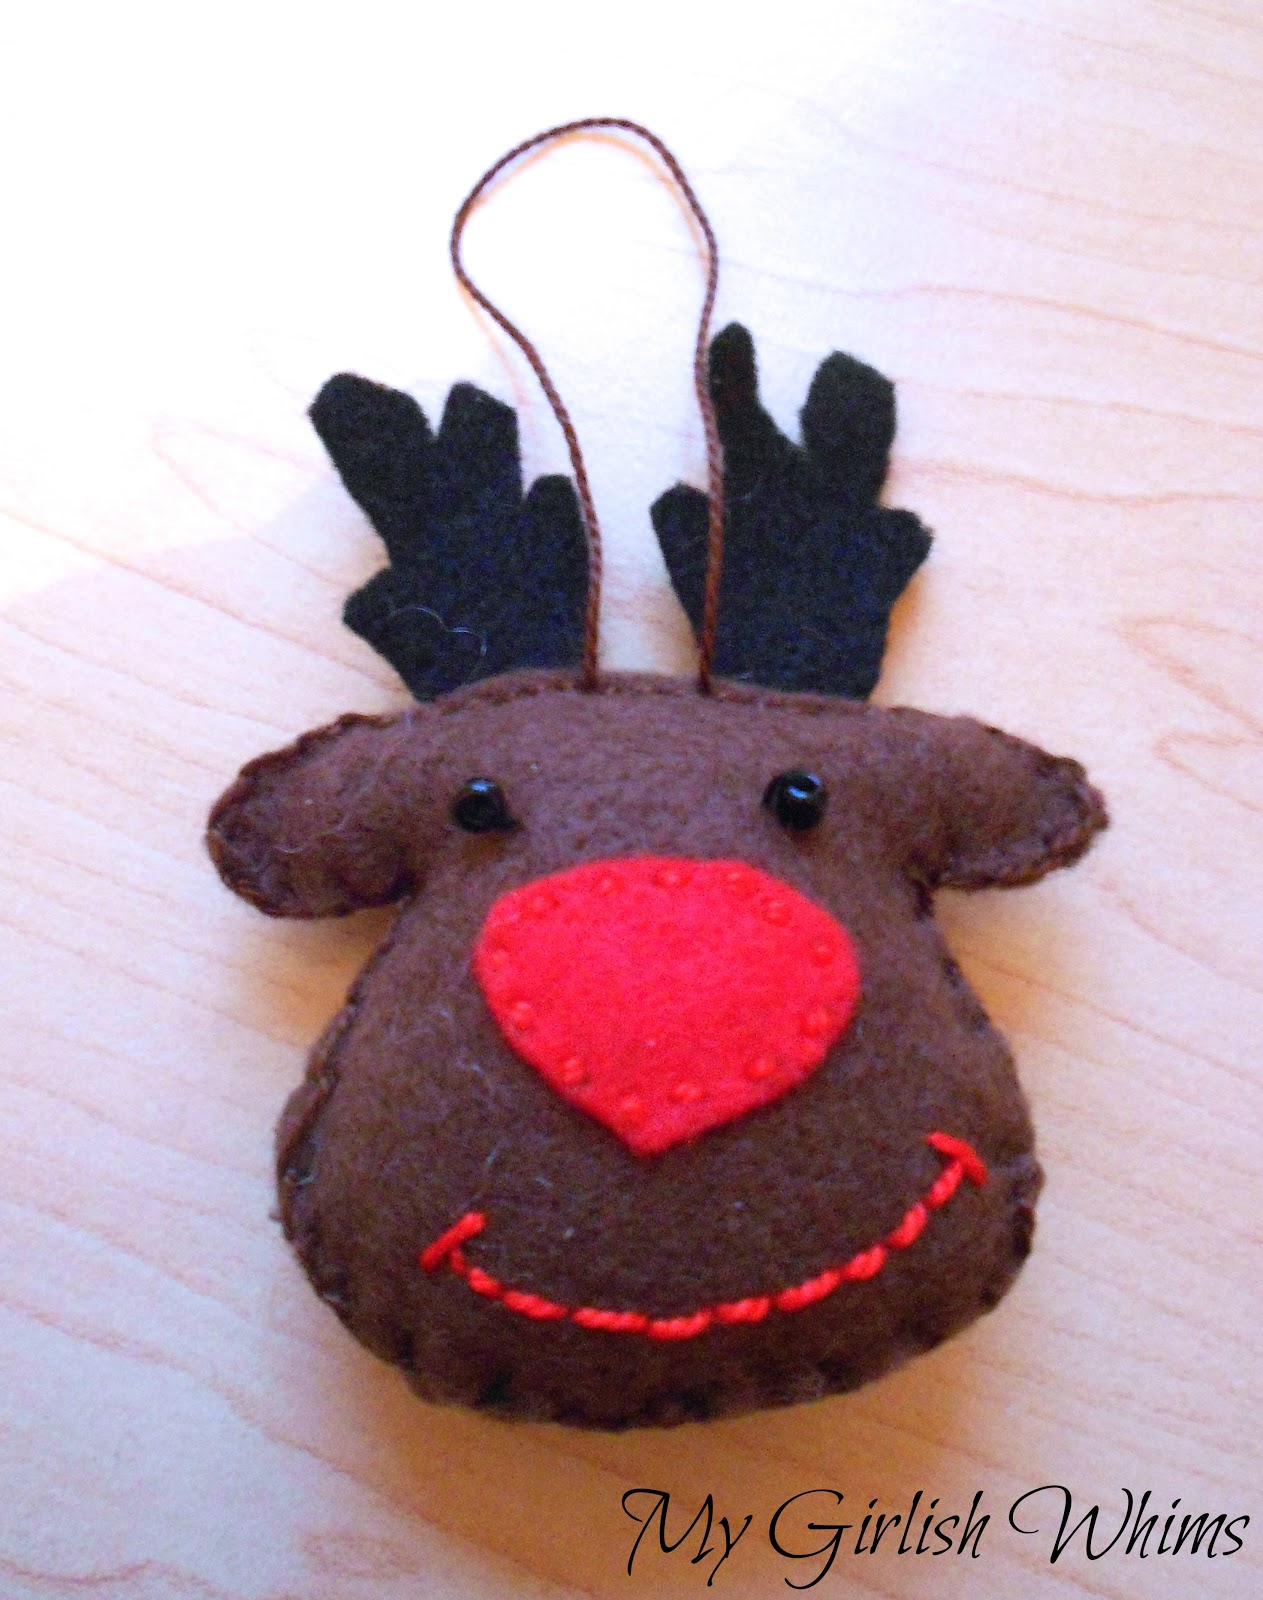 Felt Reindeer Ornament - My Girlish Whims